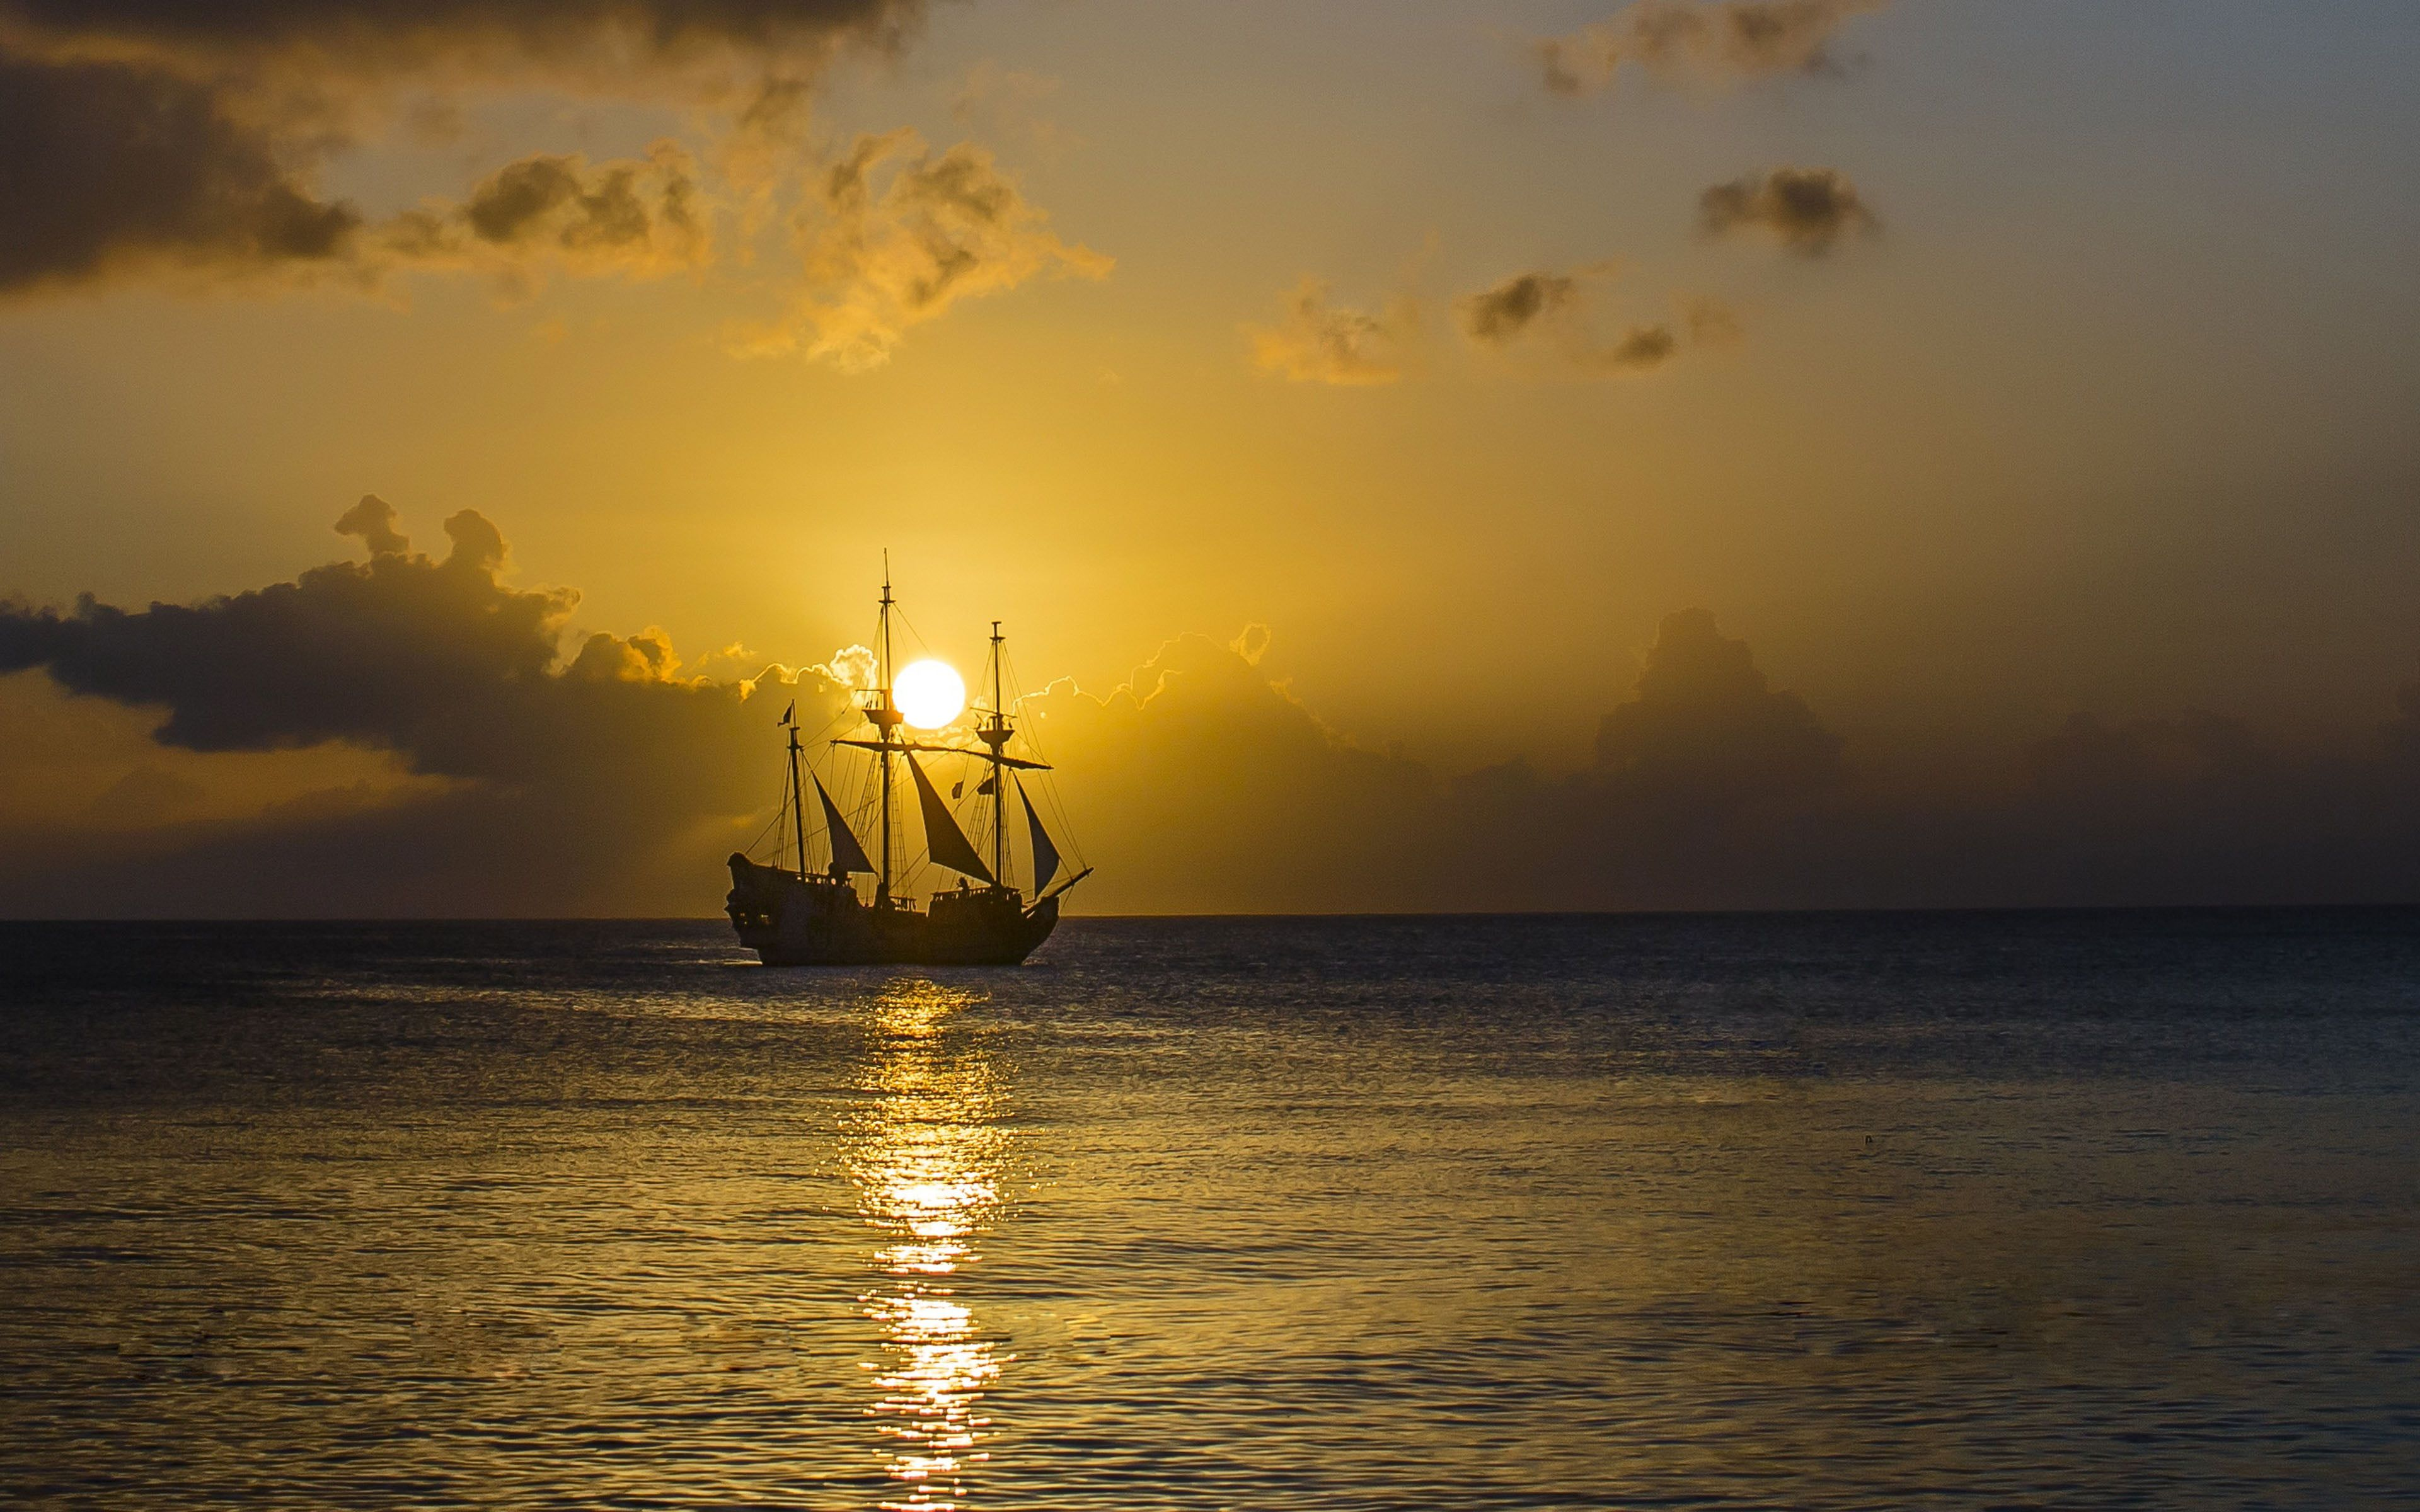 Gold Sunset Ocean Old Pirate Ship With Sail Sky 4k Ultra Hd Wallpaper For Desktop Mobile And Computer 3840 2400 4k Gold Sunset Hd Wallpaper Desktop Wallpaper Wallpaper sunset sea boat sky coast